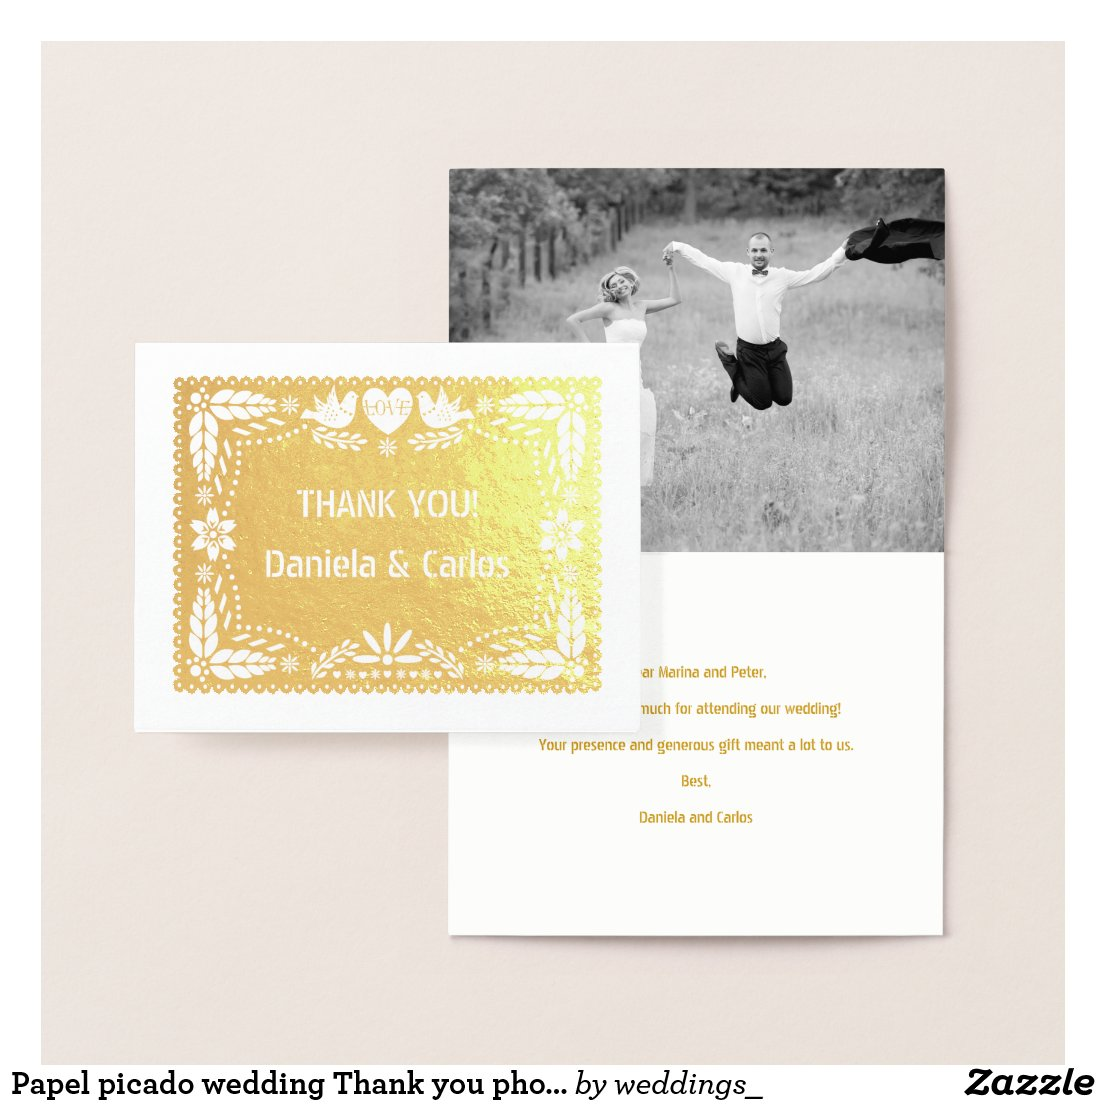 Papel picado wedding Thank you photo gold Foil Card